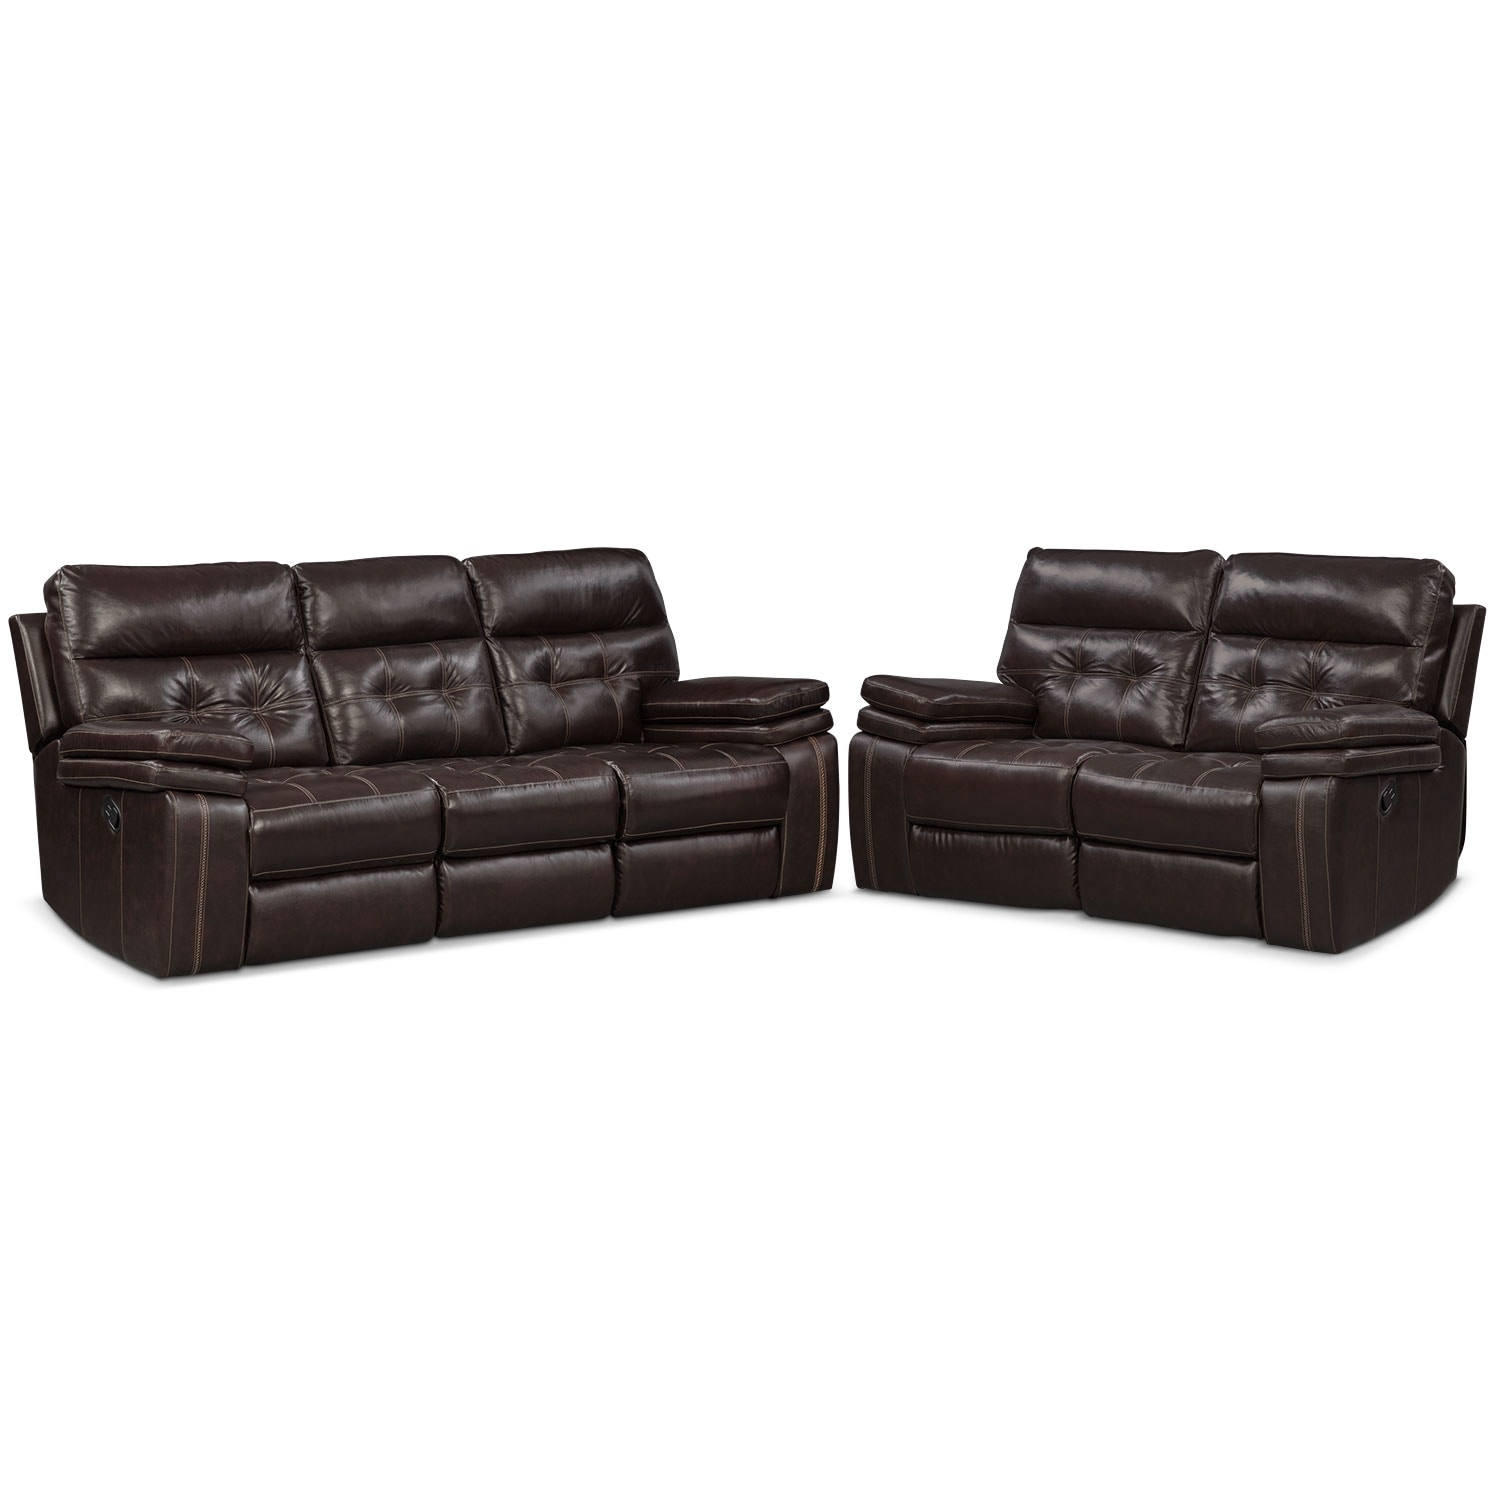 Brown Sofa And Loveseat Sets Brisco Manual Reclining Sofa And Loveseat Set